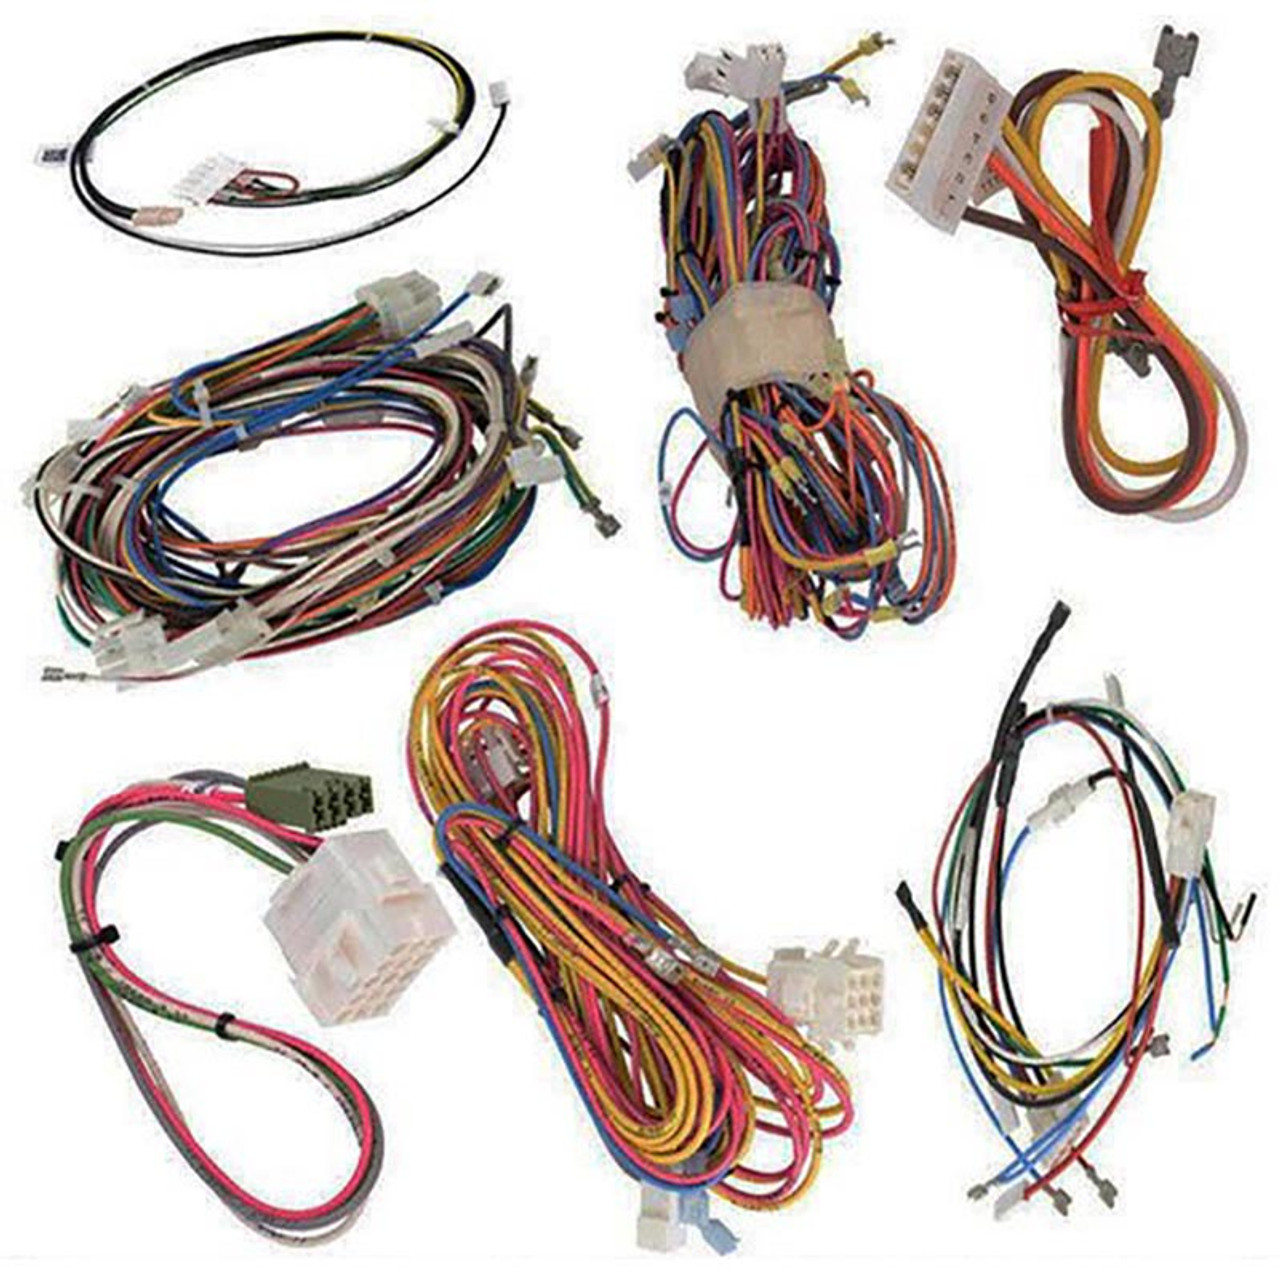 23m25 wiring harness 6 Pin Wire Connector